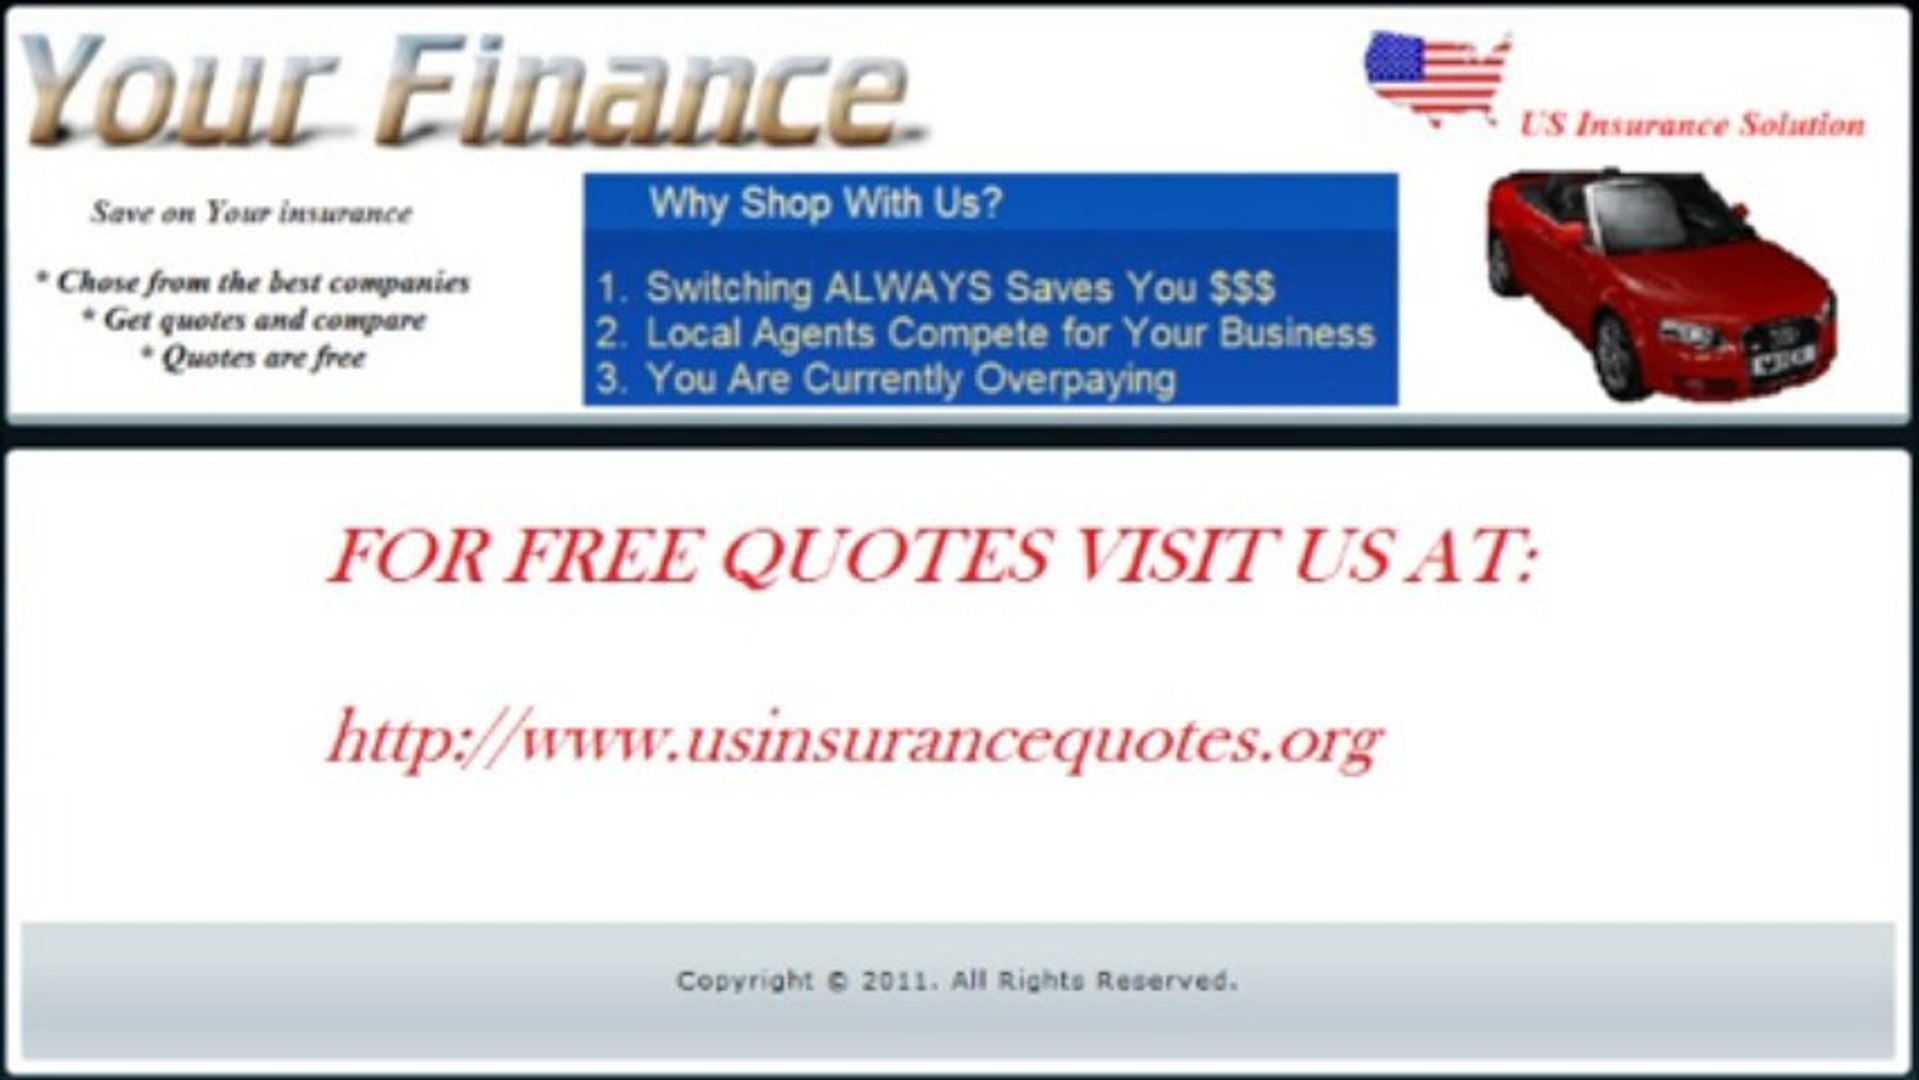 USINSURANCEQUOTES.ORG - Where can you get home insurance when you've had your policy cancelled